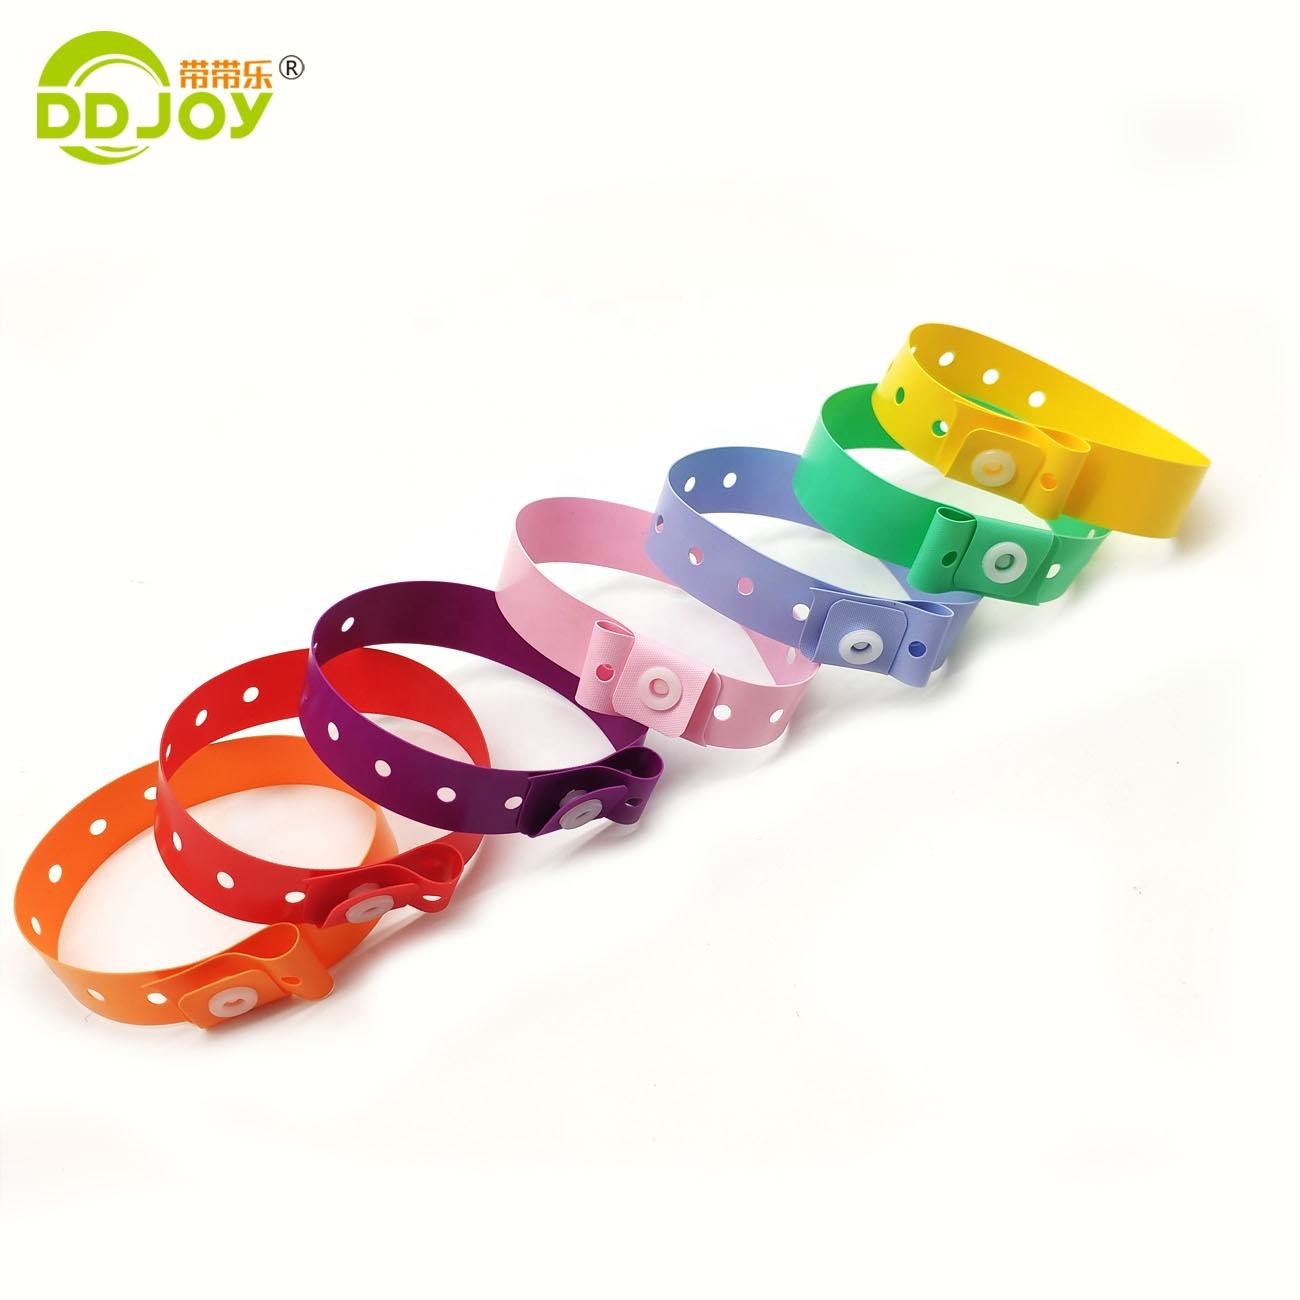 Customized one-off L shape id vinyl wristbands for promotion